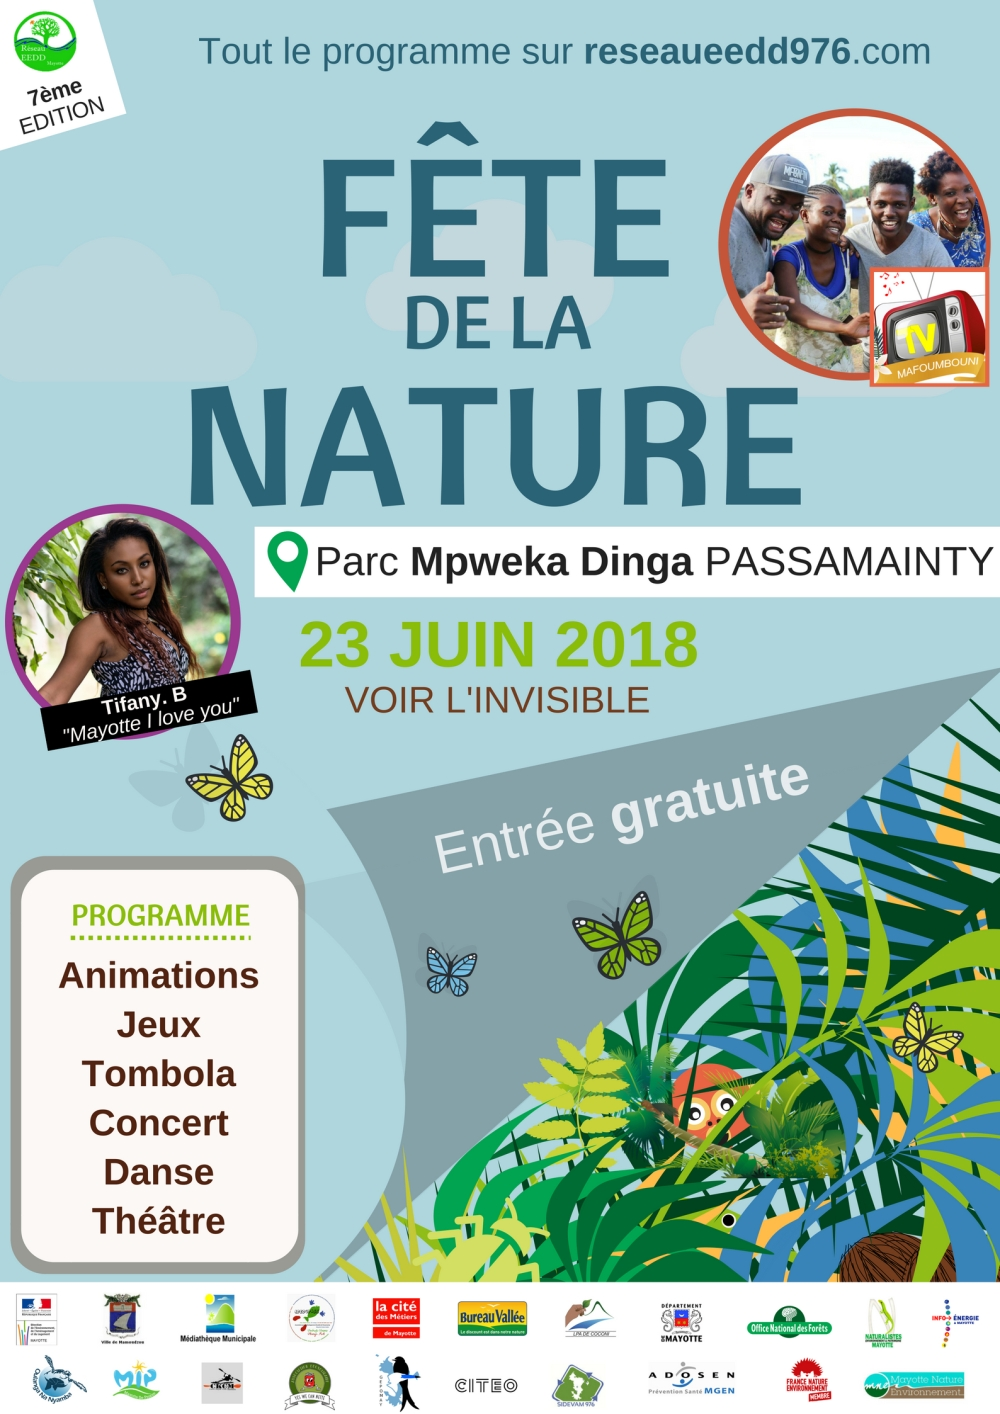 AFFICHE OFFICIELLE FETE DE LA NATURE 2018